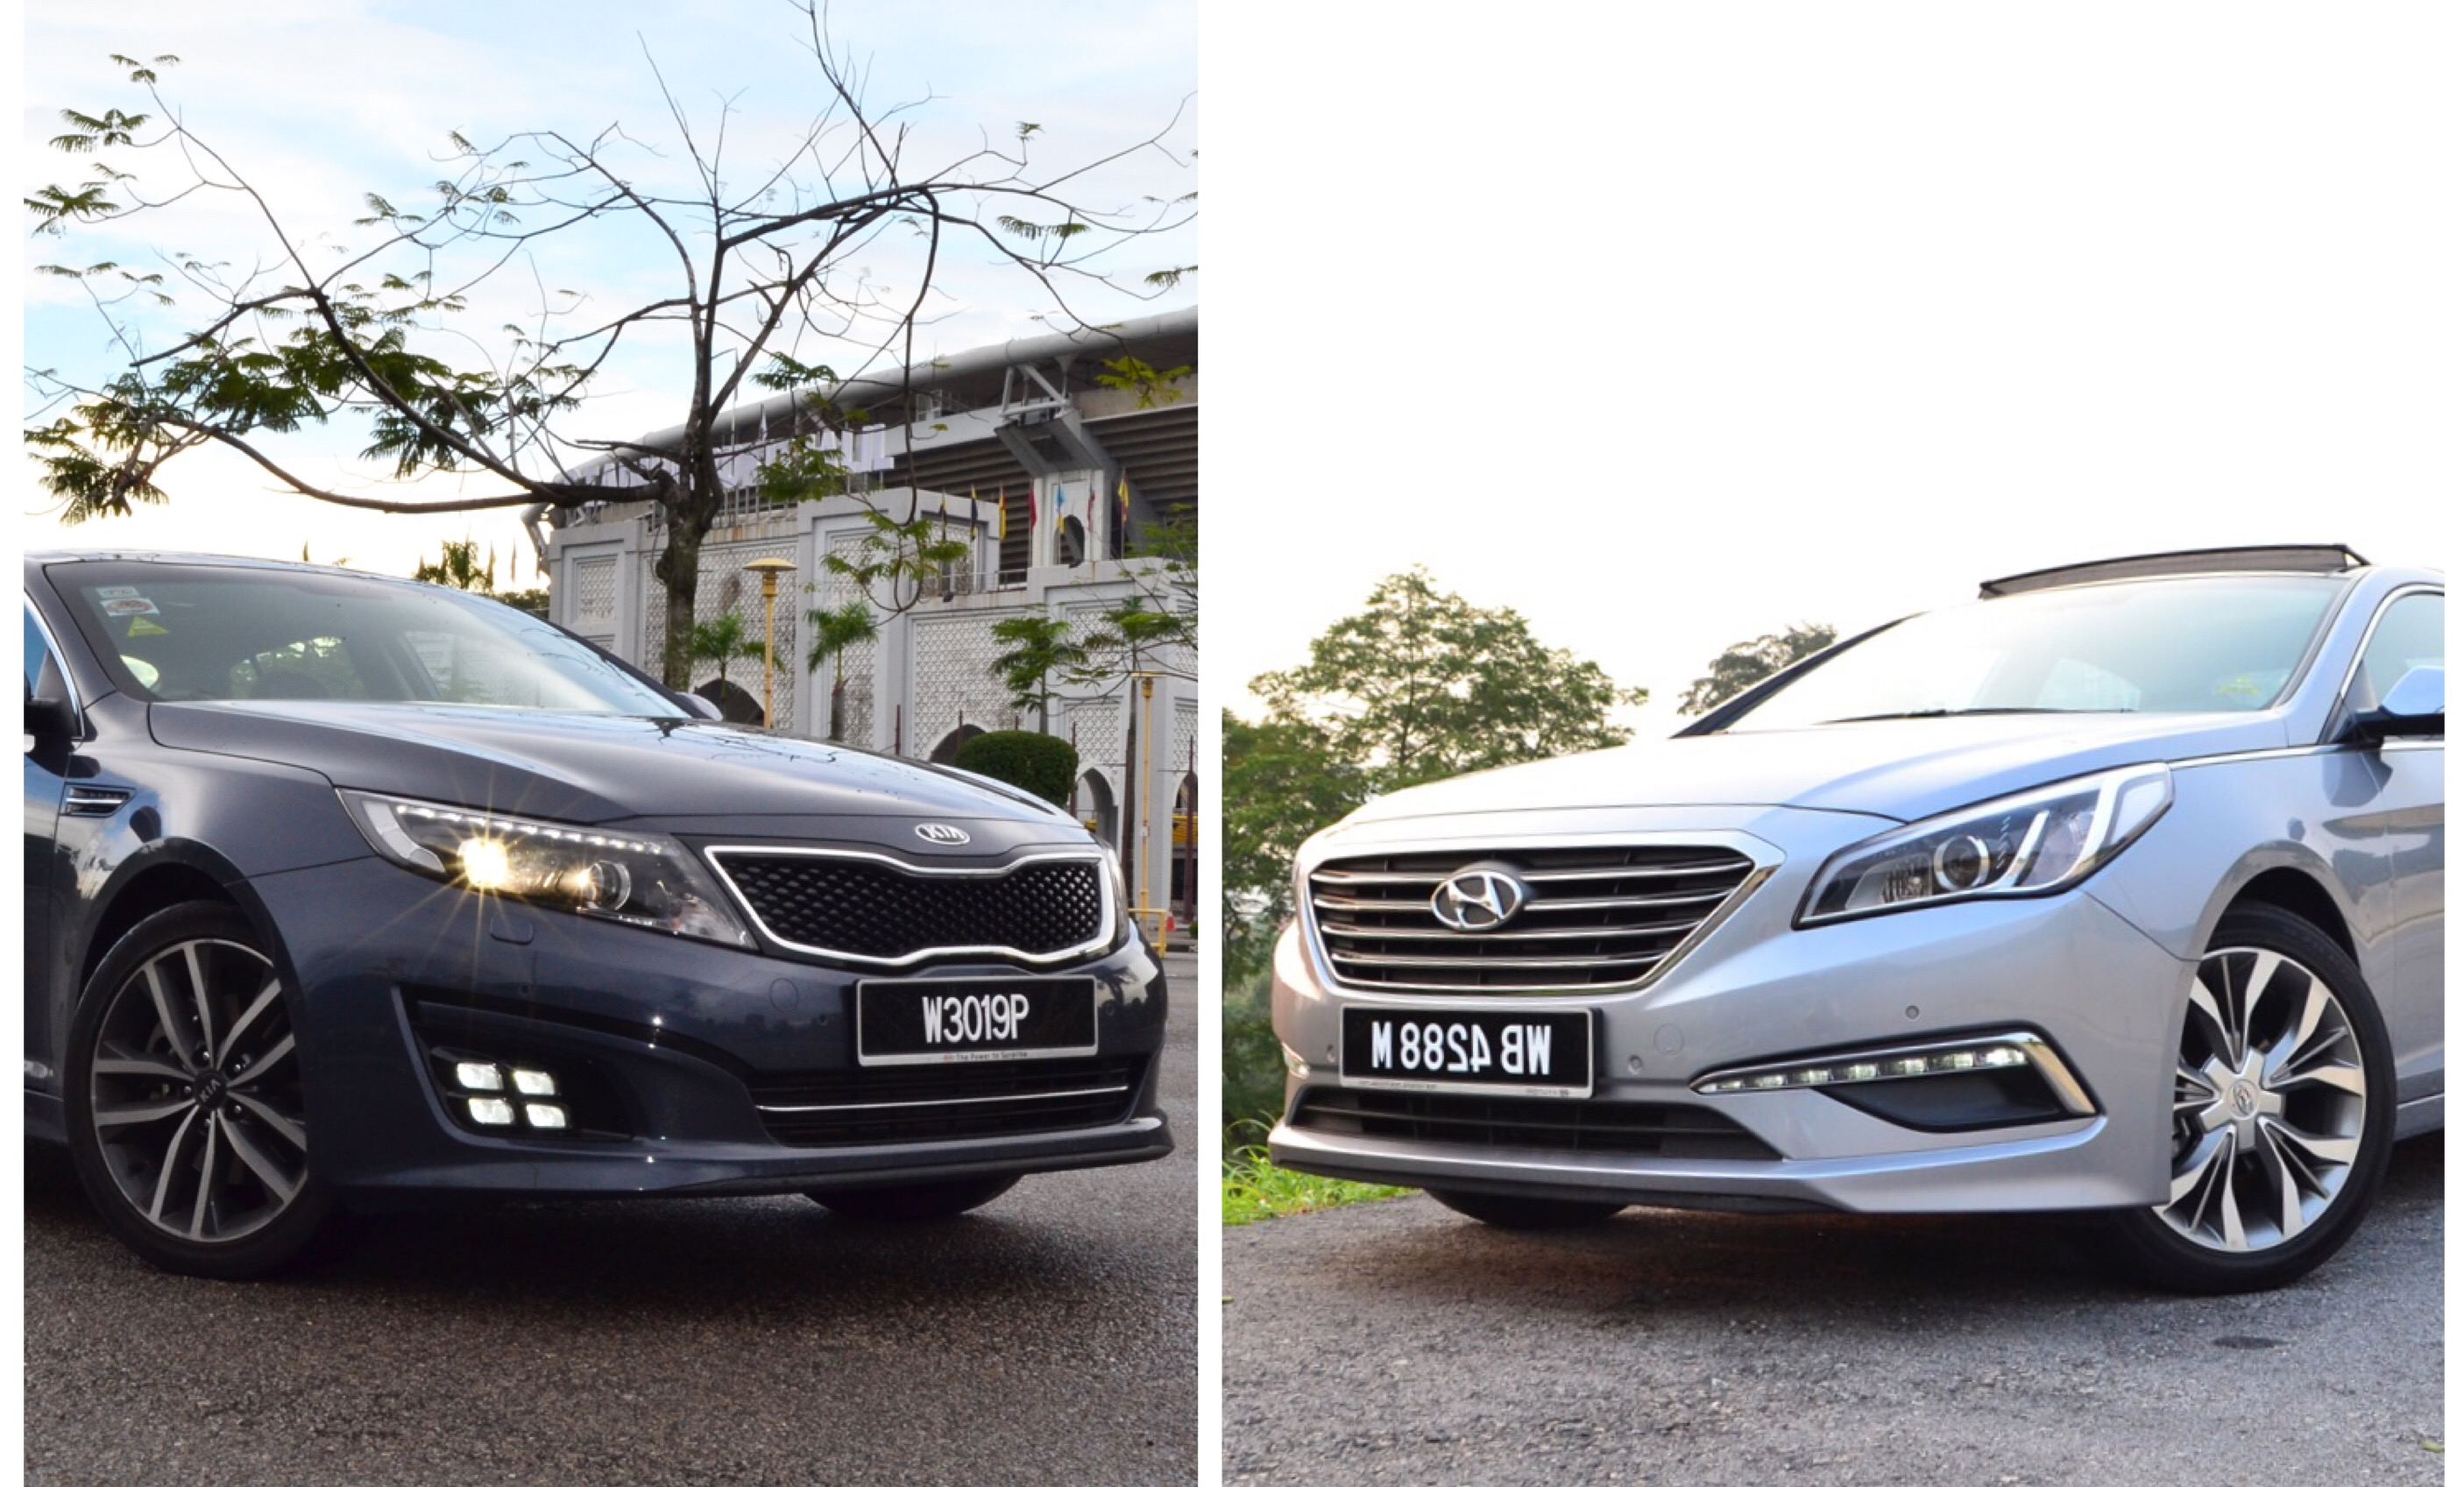 The new Kia Optima K5 vs the new Hyundai Sonata – Casual or Formal